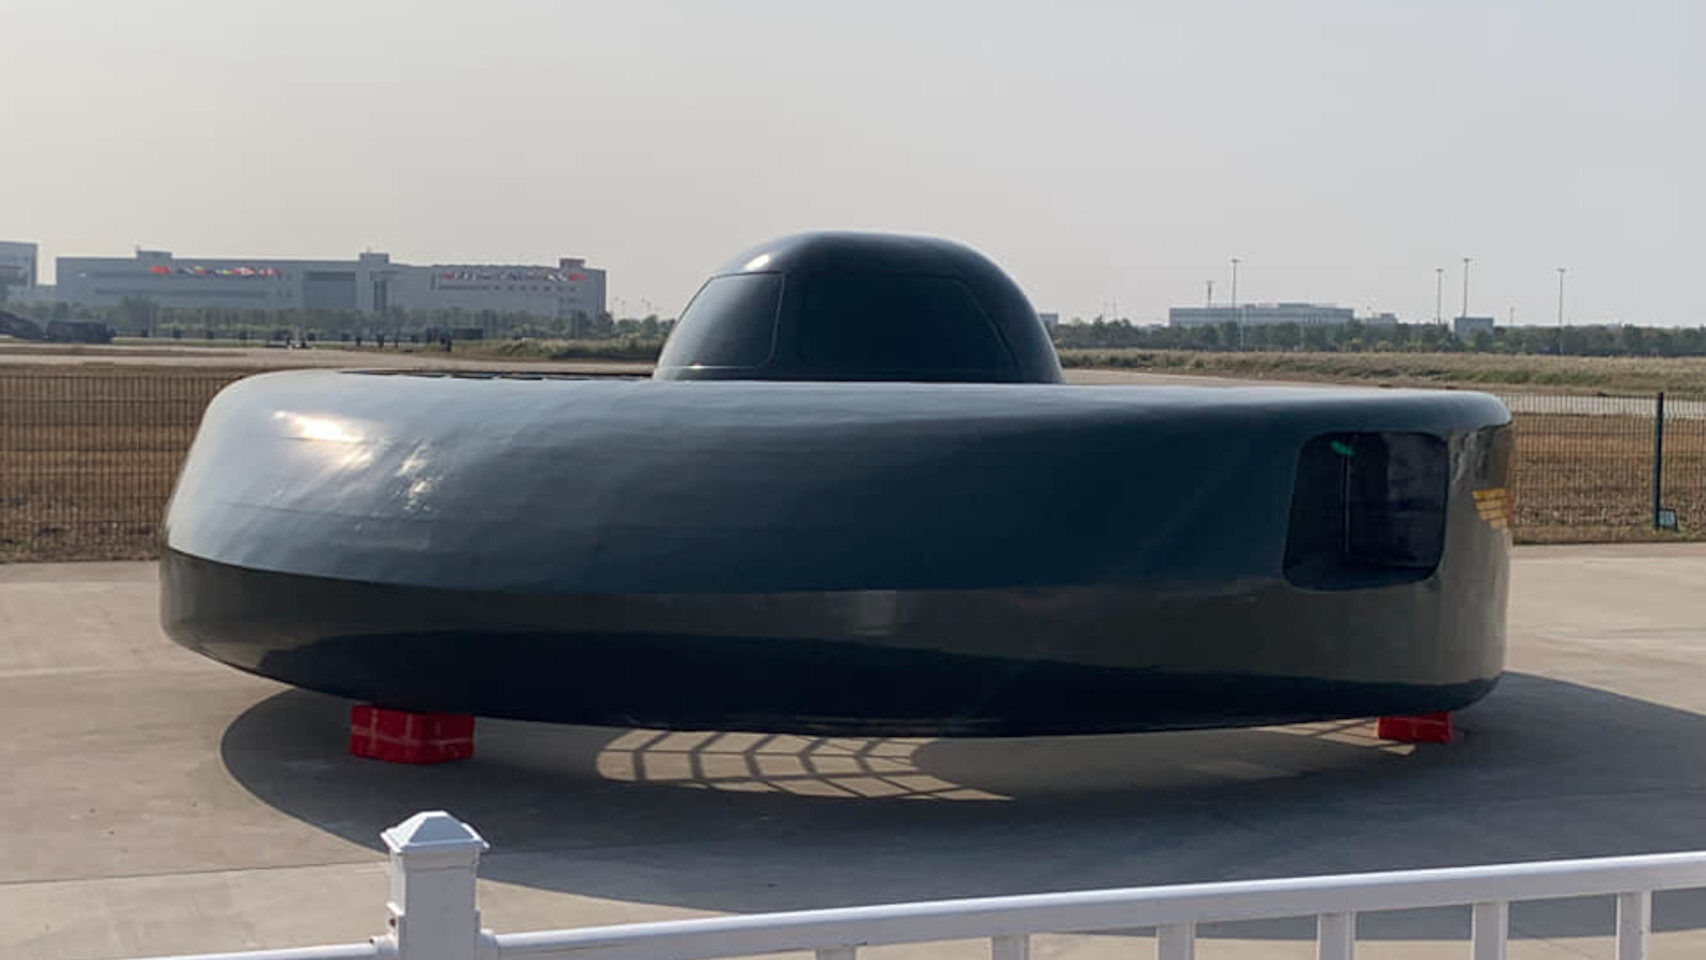 China creates a flying saucer that looks like something out of a 1950s movie